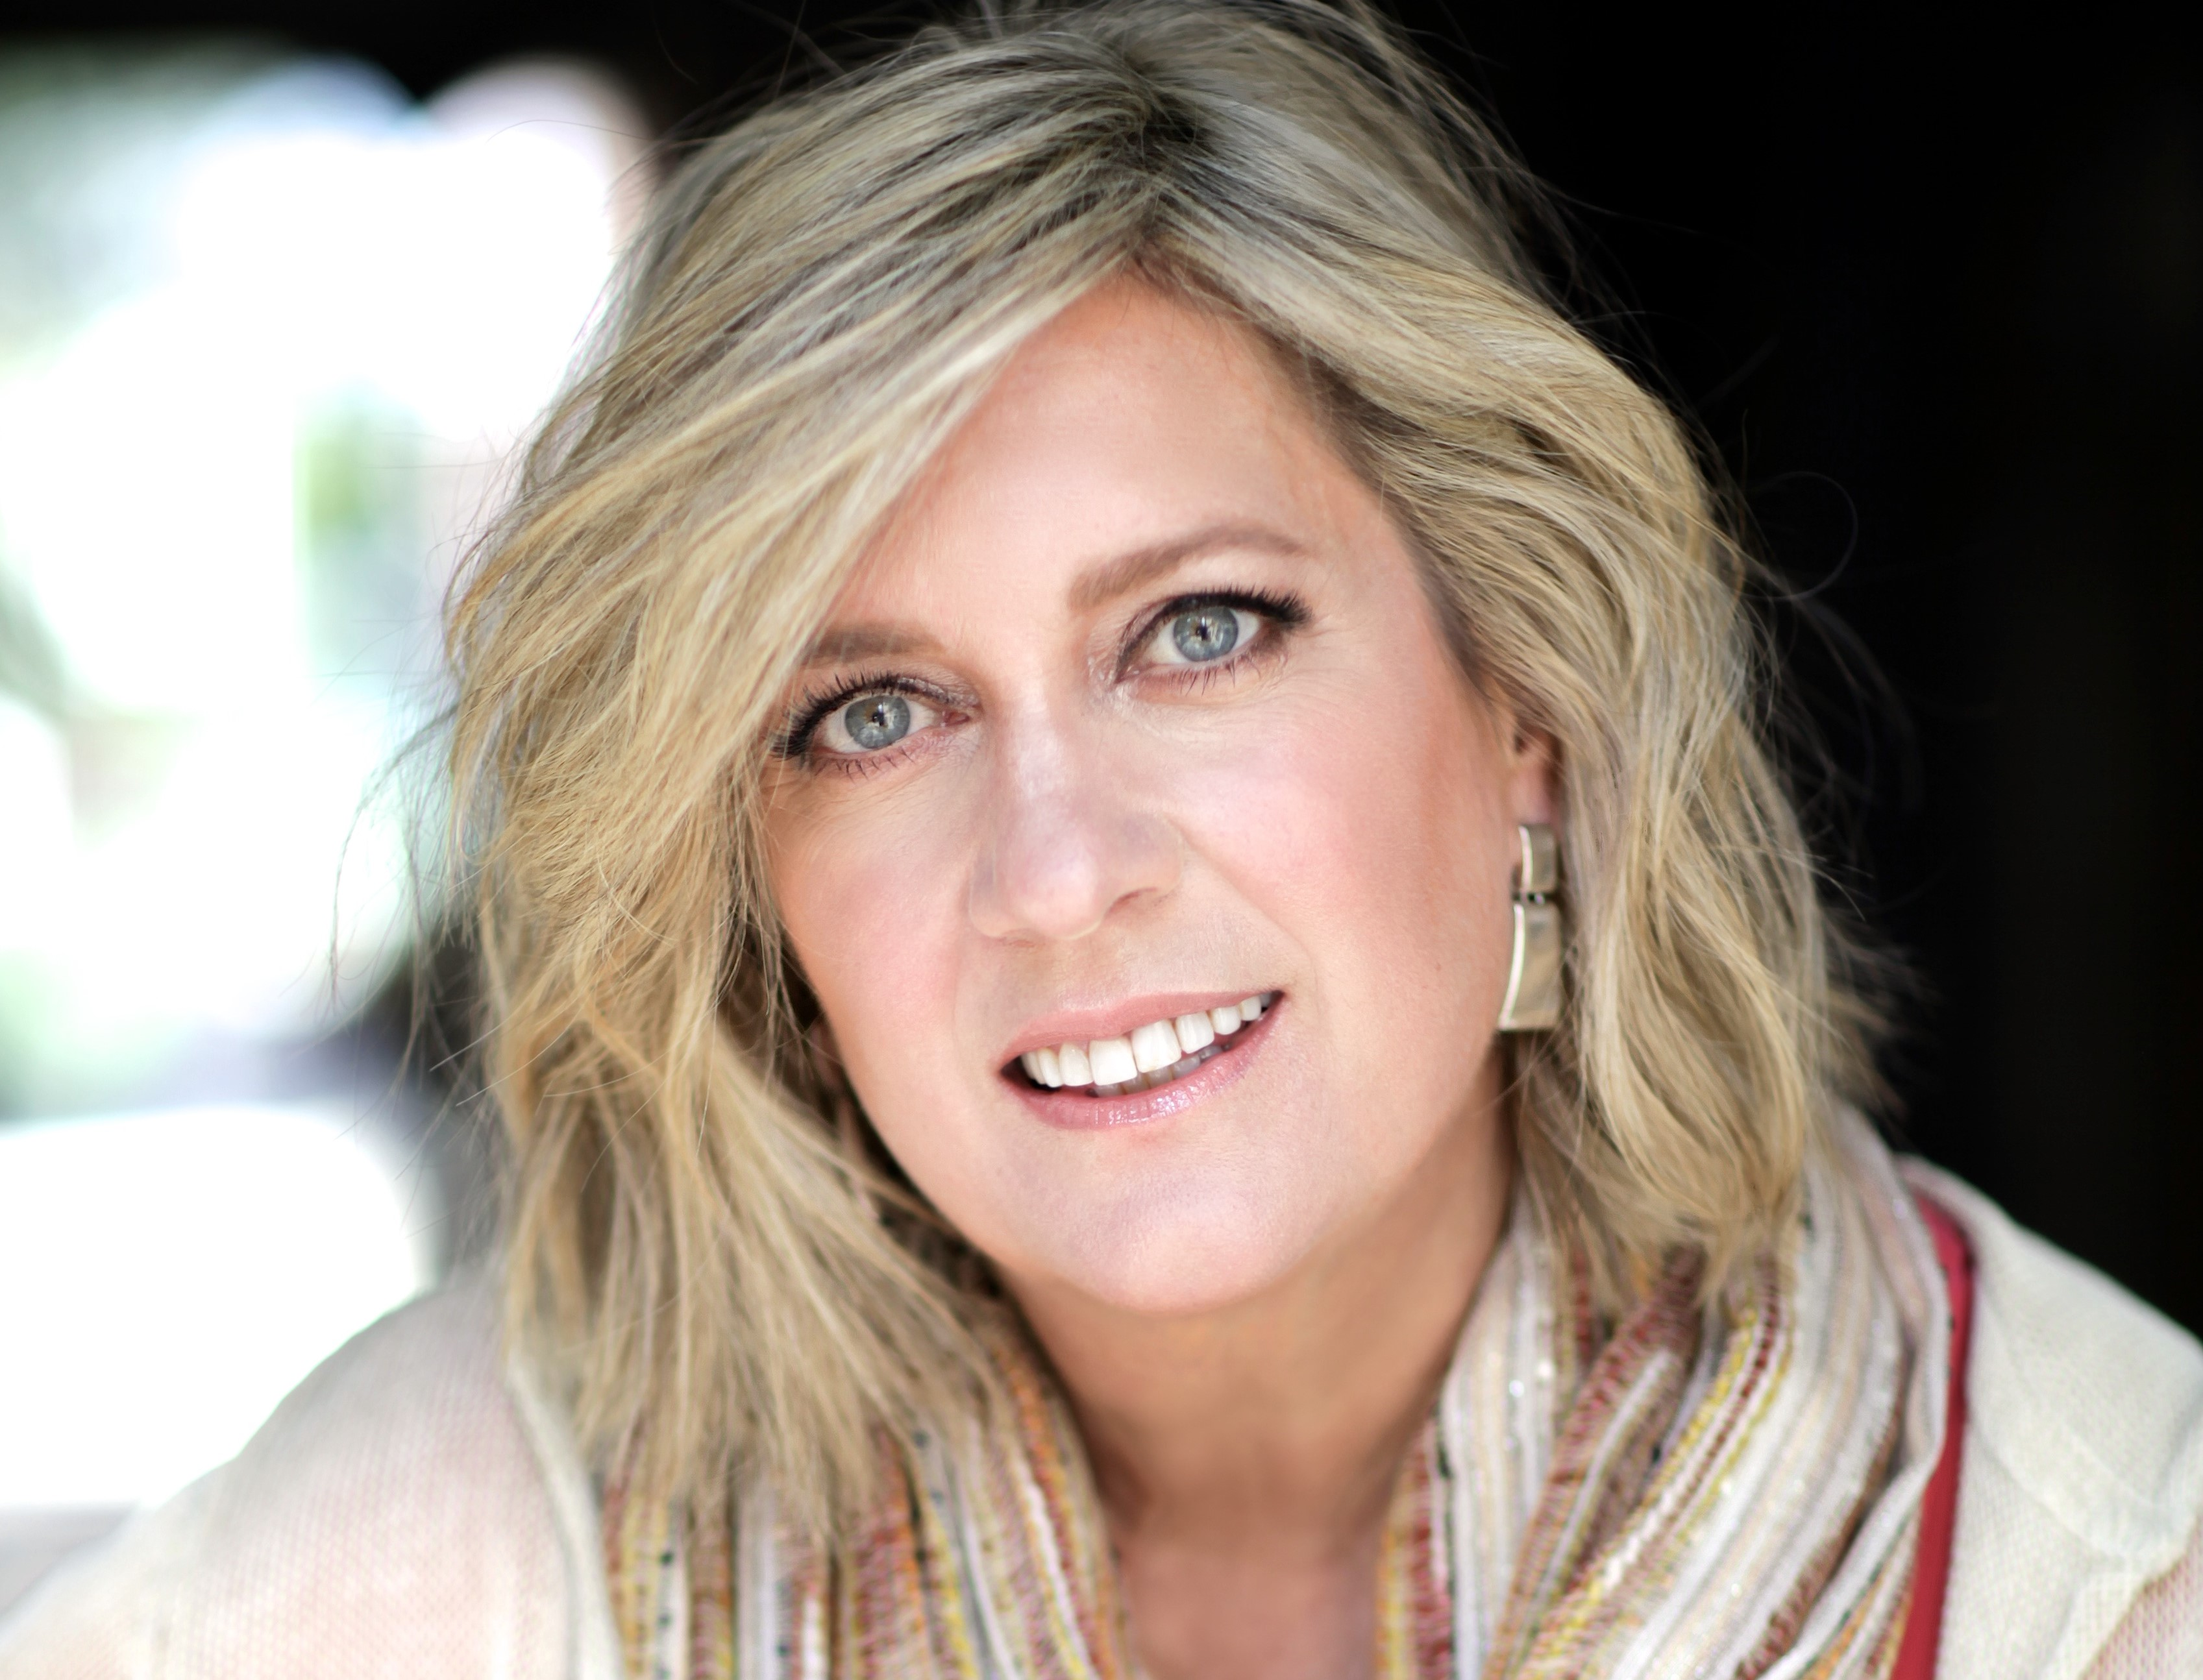 Award-Winning Vocalist to Perform in Phoenixville to Raise Funds for Community Coalition